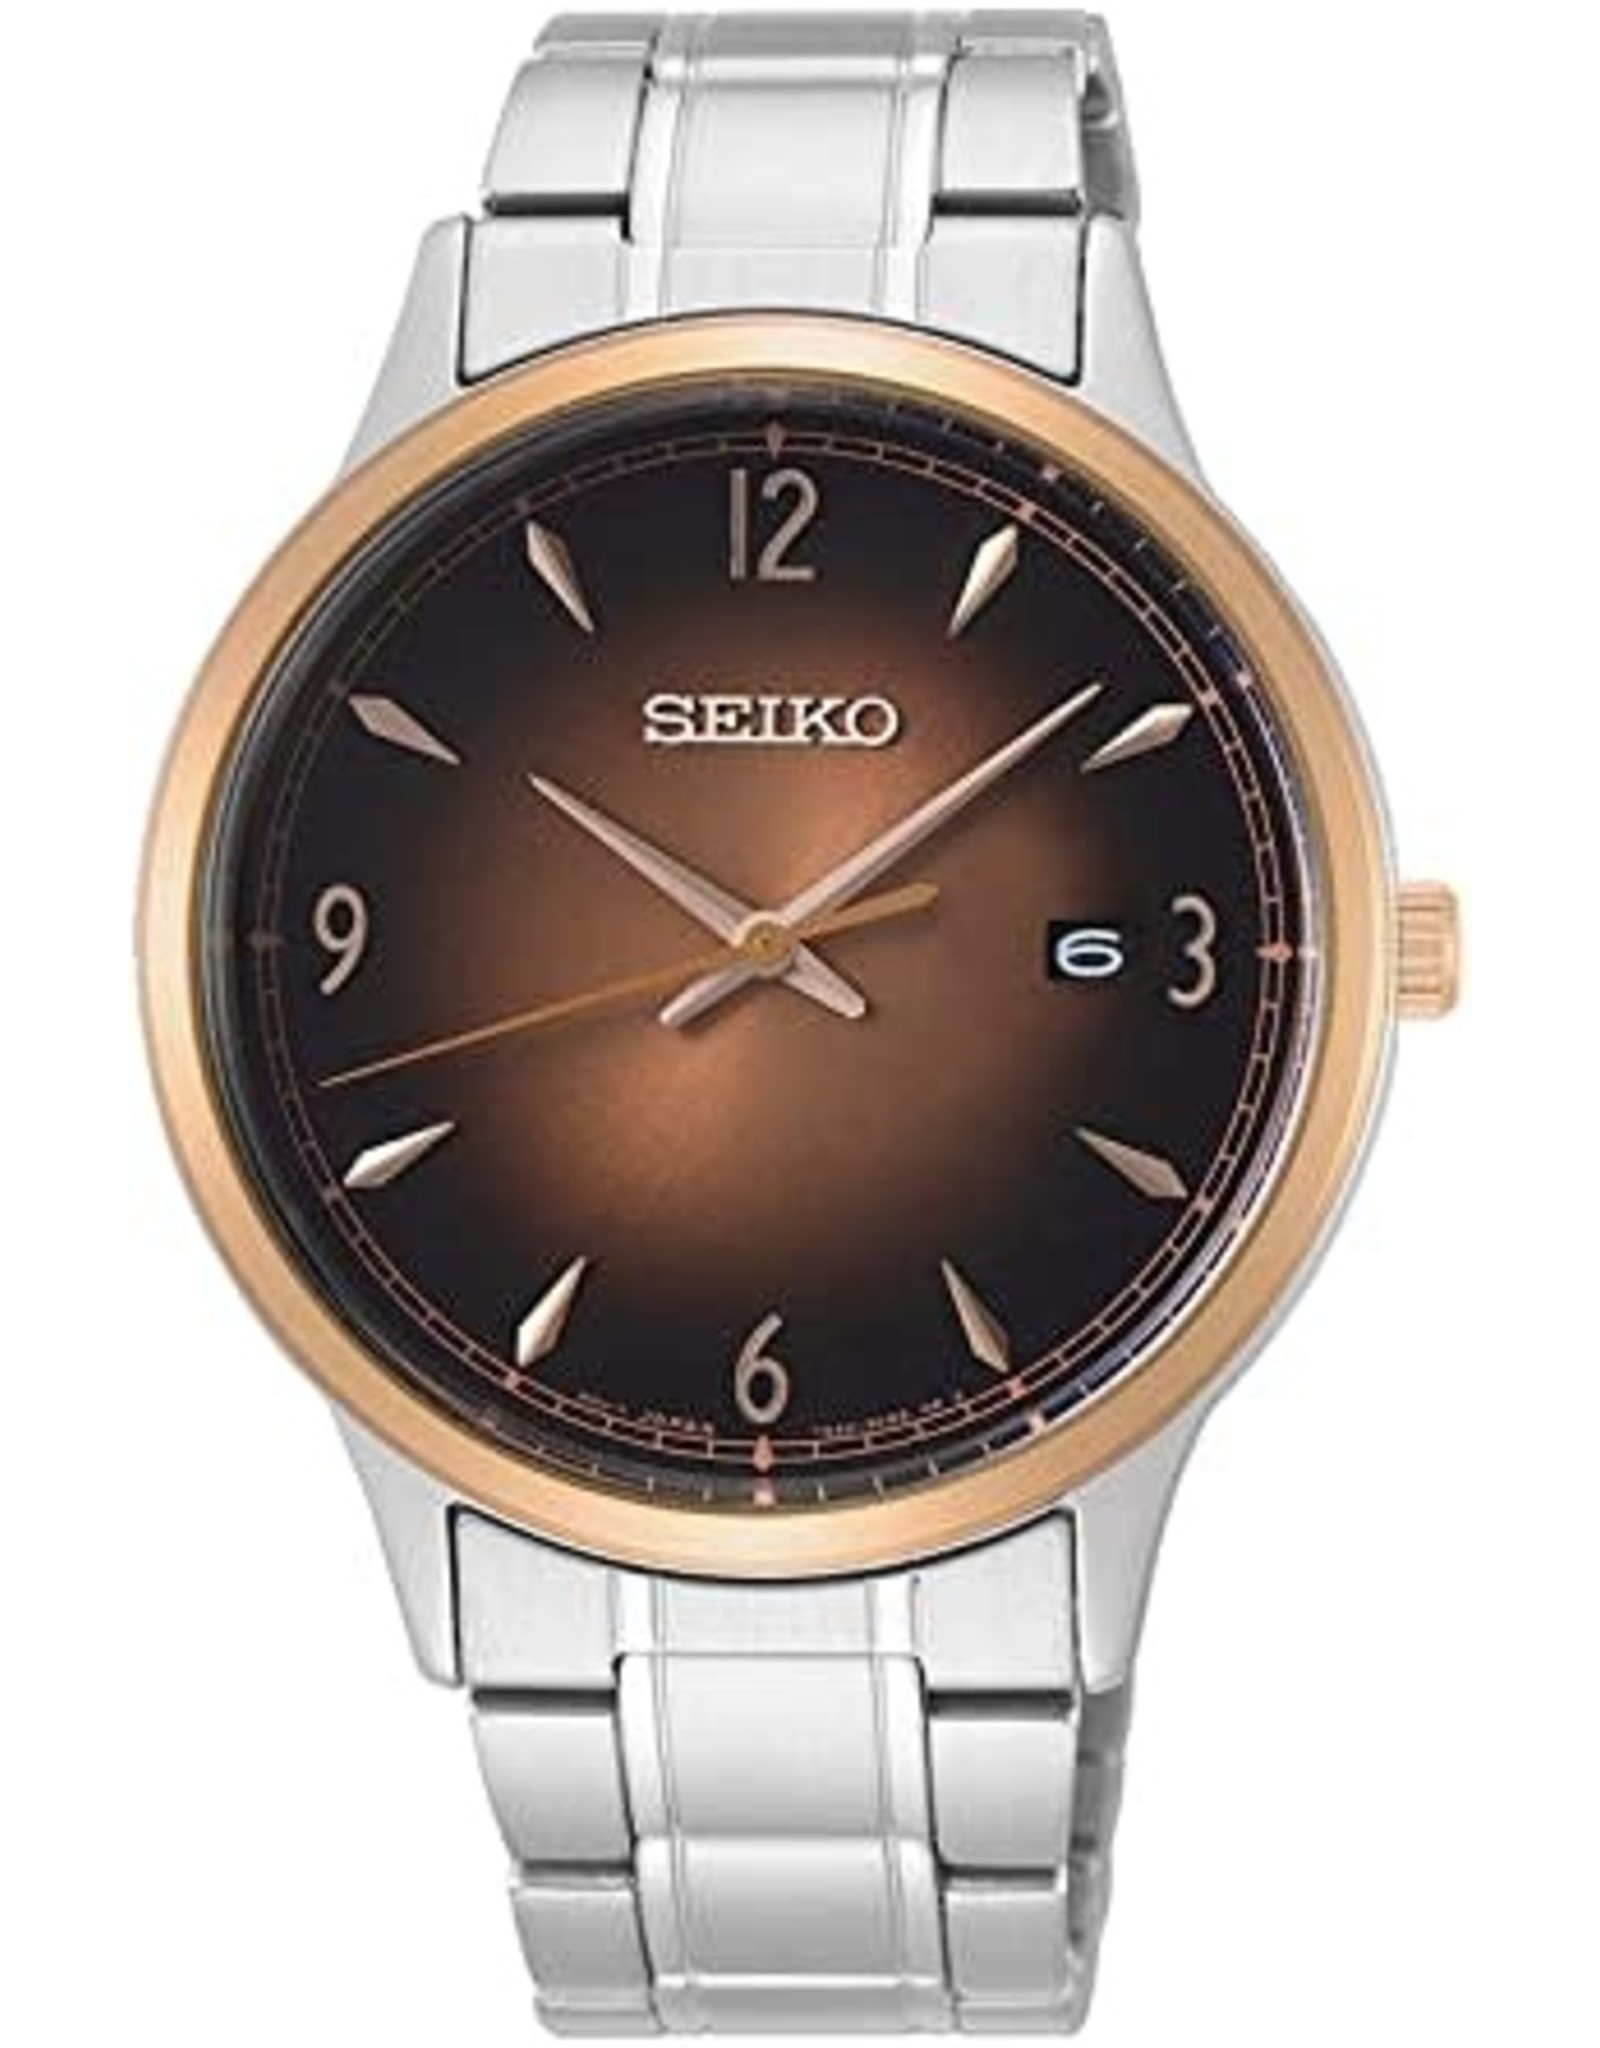 Mens Seiko Rose Gold Bezel and Brown Sunray Dial Watch with Date, 40mm